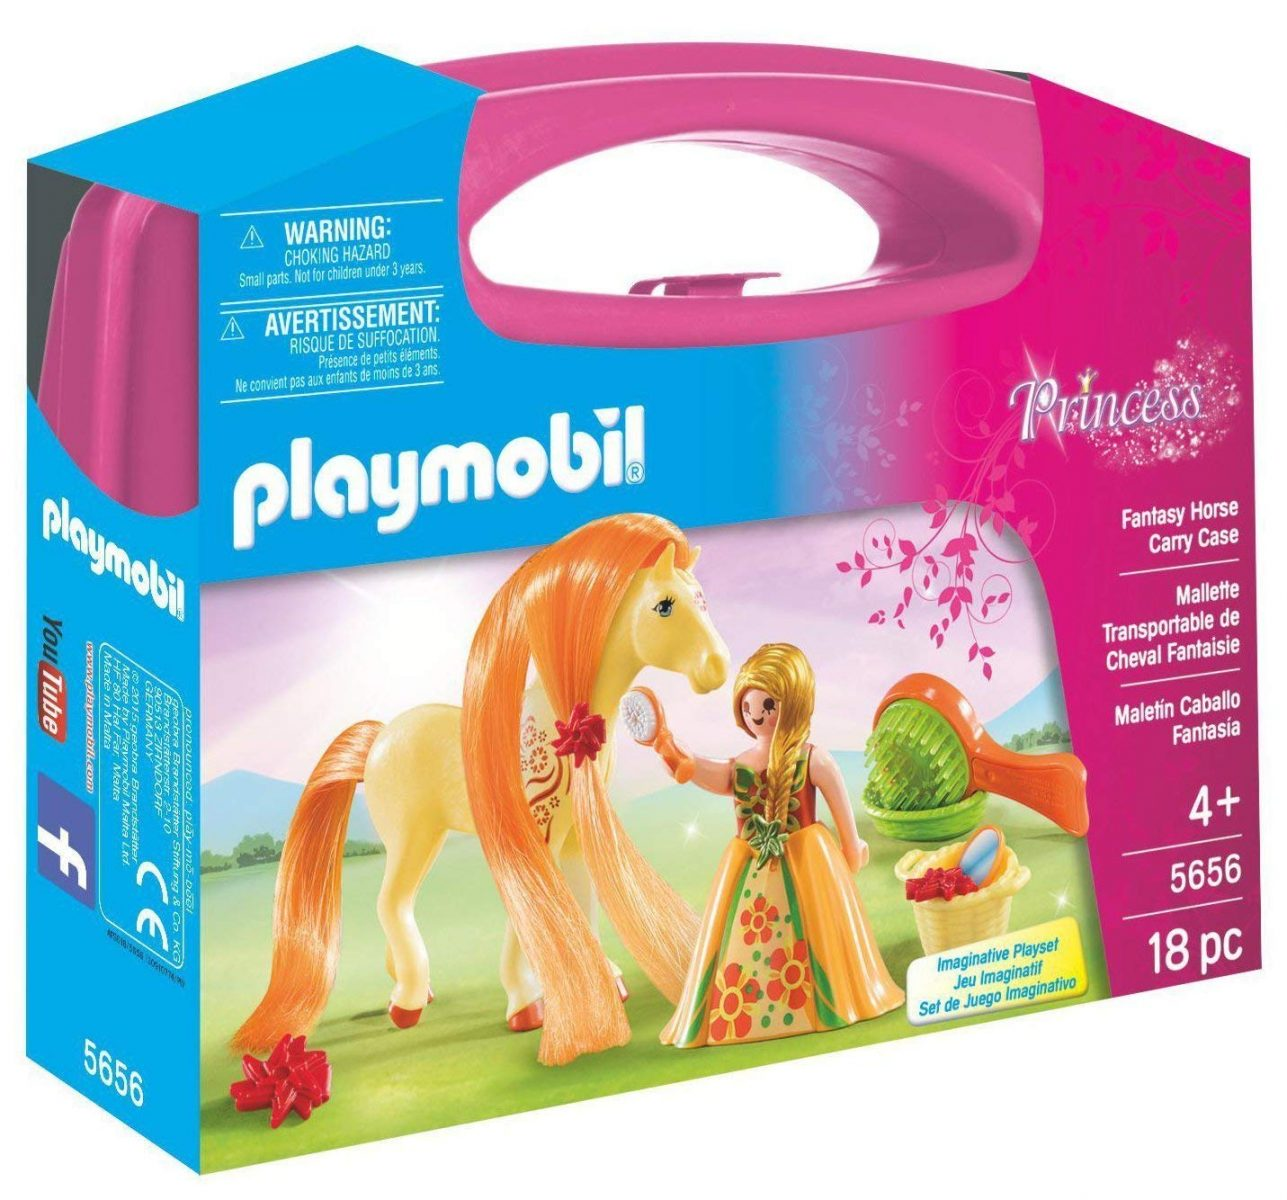 Playmobil Fantasy Horse Carrying Case